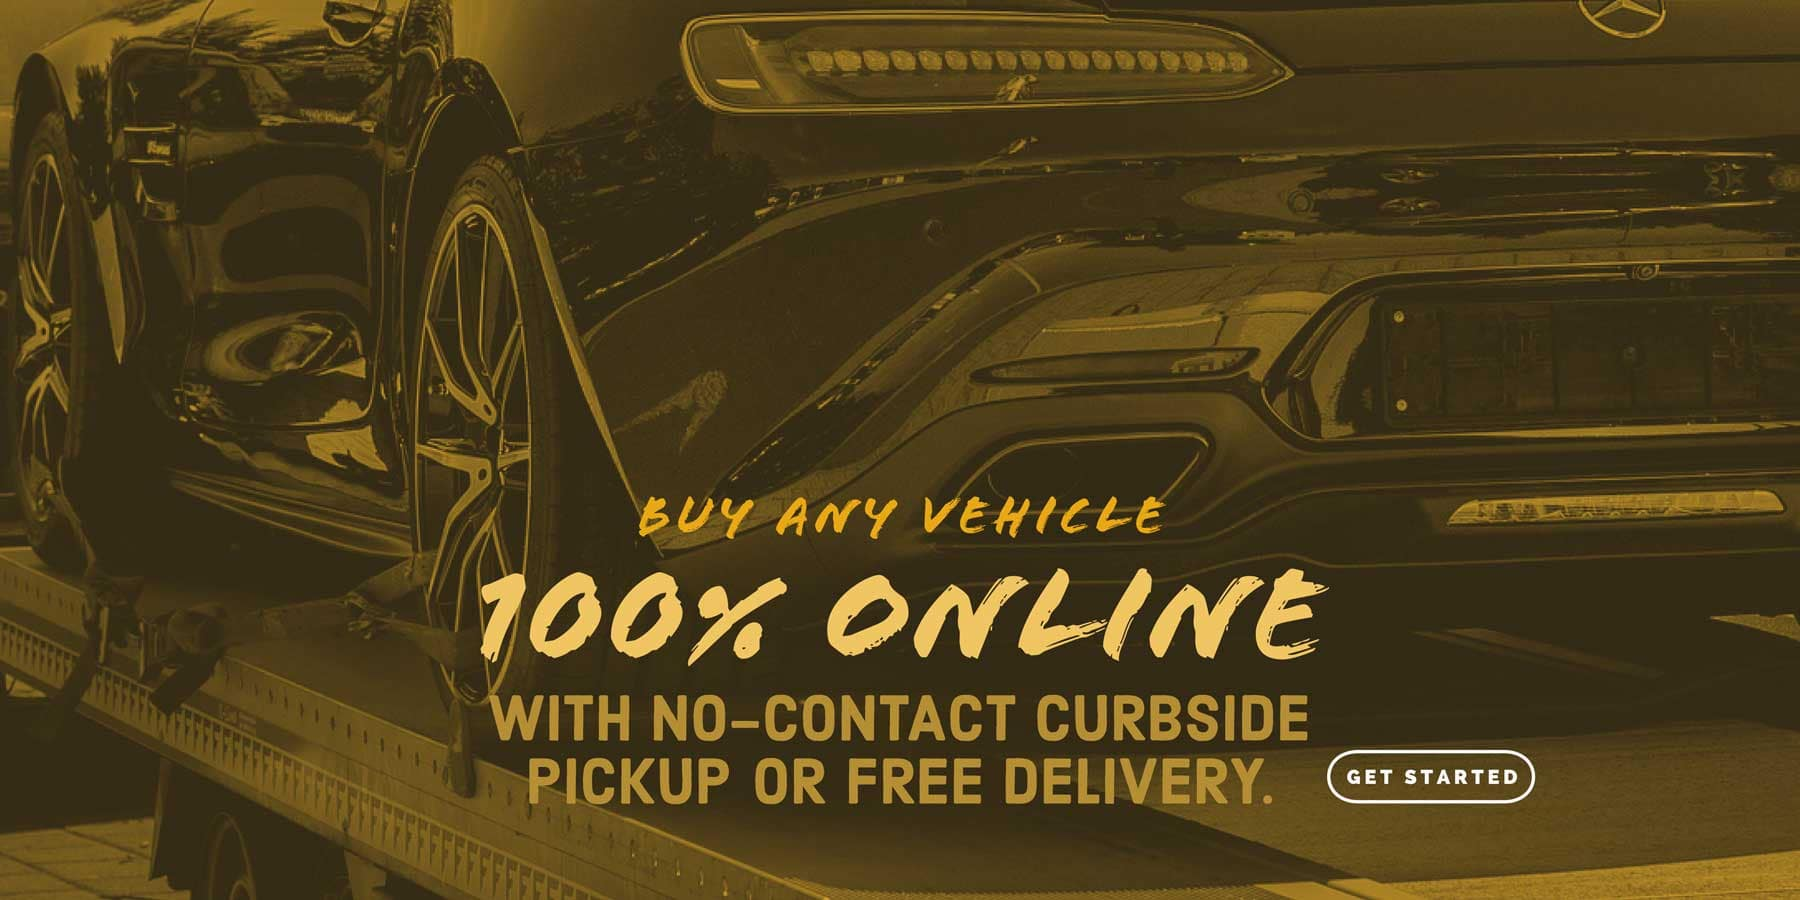 Buy any vehicle 100% online with no-contact curbside pickup or free delivery.